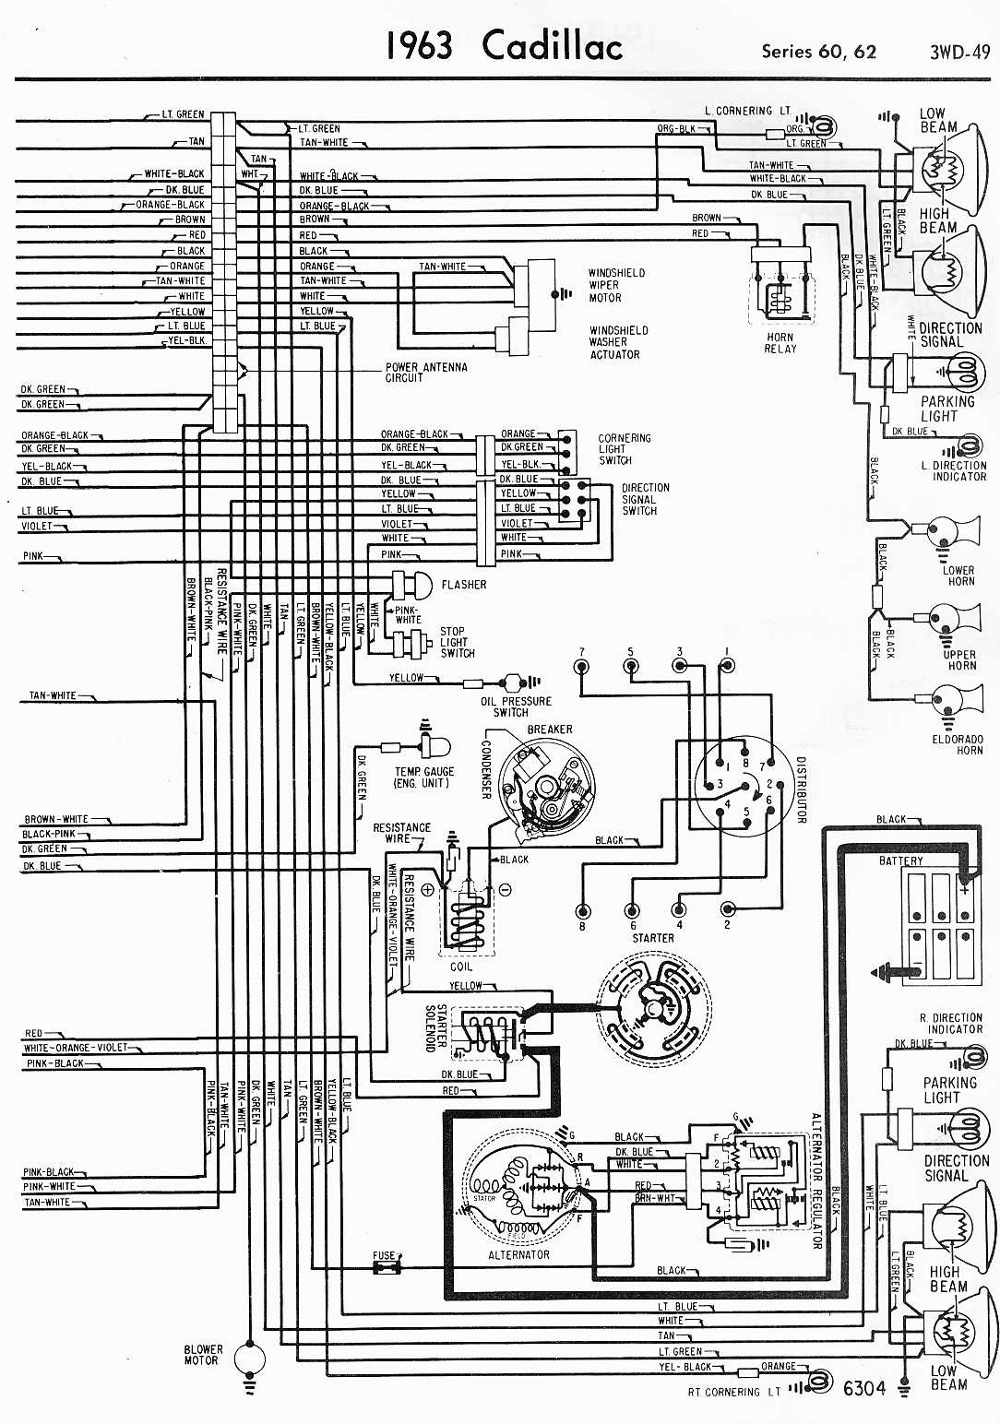 1959 Cadillac Wiring Diagram Will Be A Thing Chrysler Radio Get Free Image About Eldorado Schematic 1962